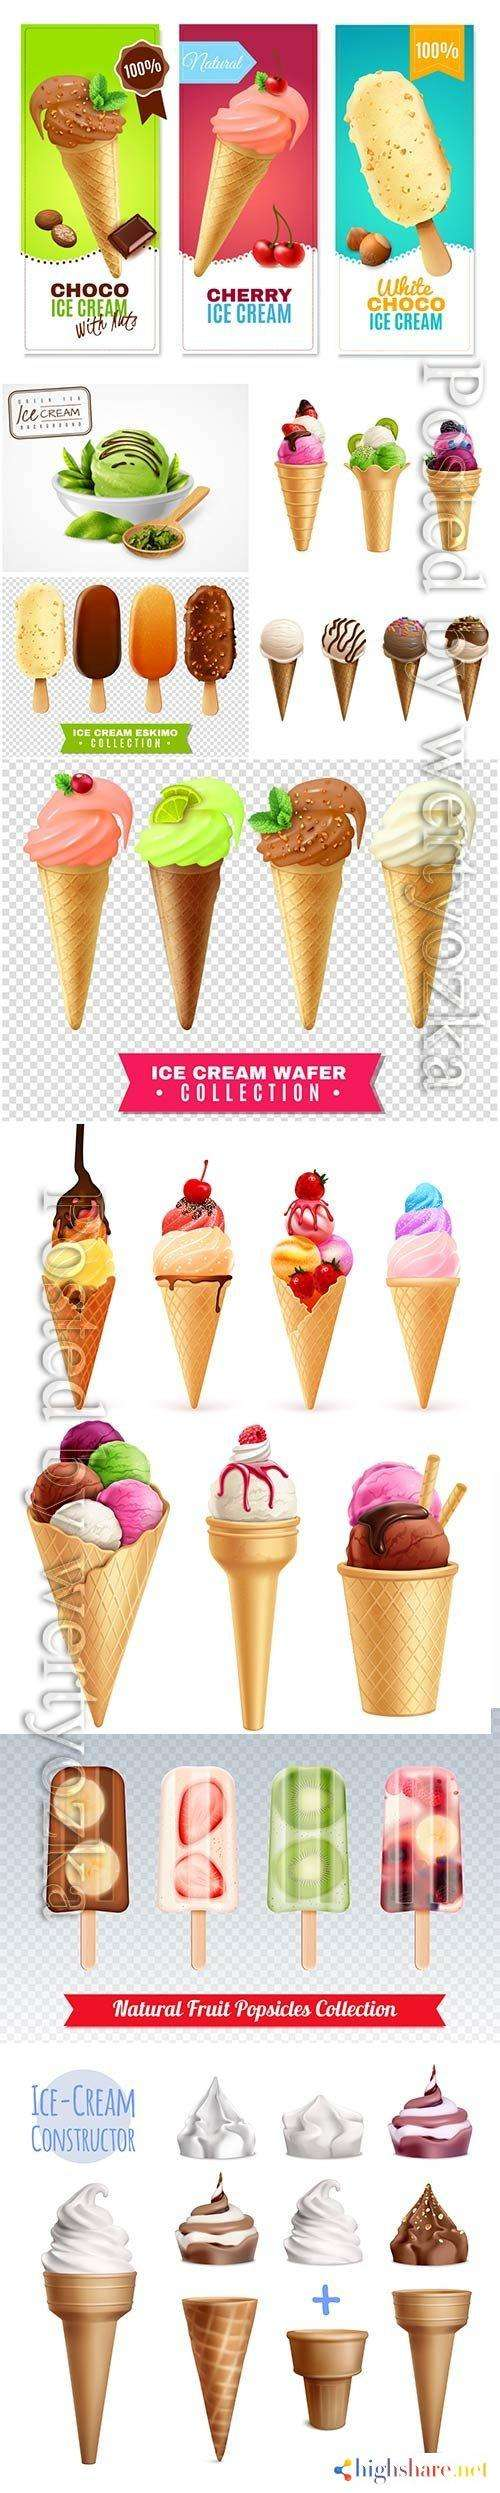 ice cream with fruits and berries vector illustration 5f4200ee3f3b1 - Ice cream with fruits and berries vector illustration